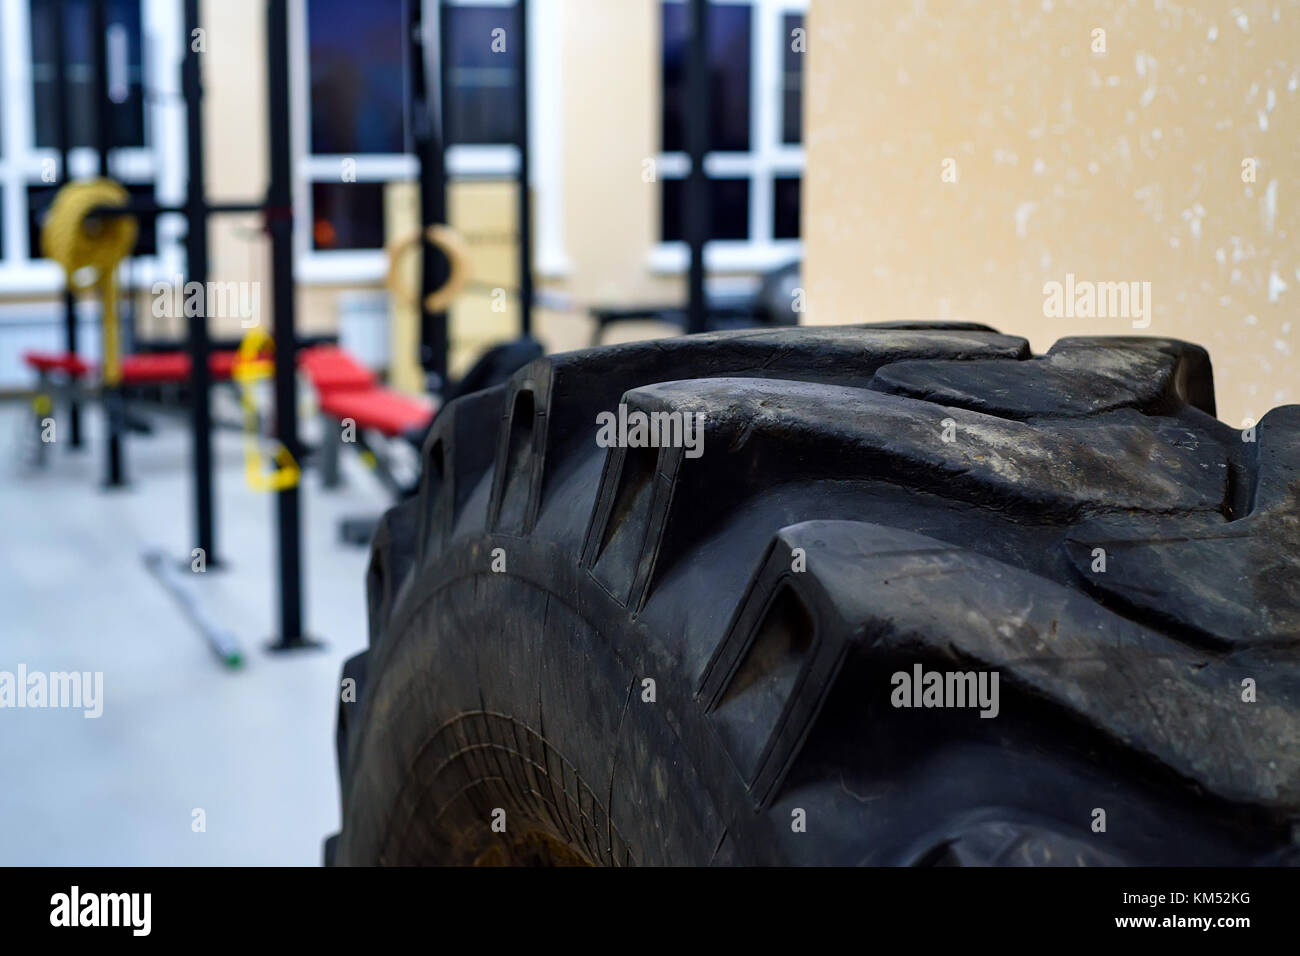 Workout gym for crossfit and body buildiing - Stock Image